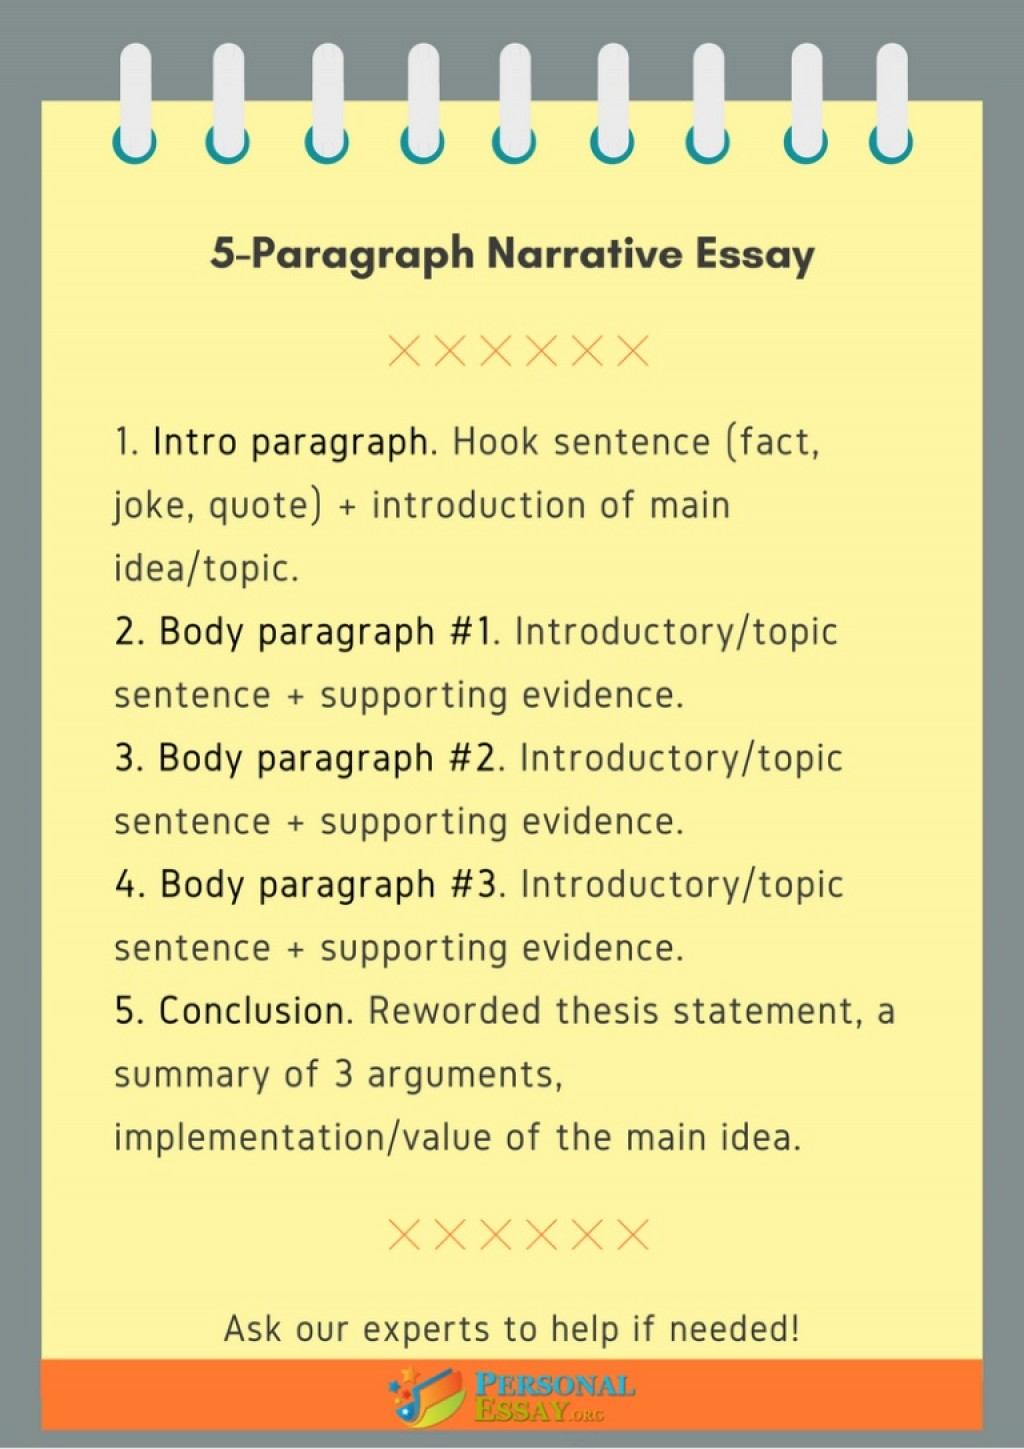 016 Narrative Essay Structure Example Fiveparagraphnarrativeessaystructure Thumbnail Surprising Pdf Examples College Personal High School Large